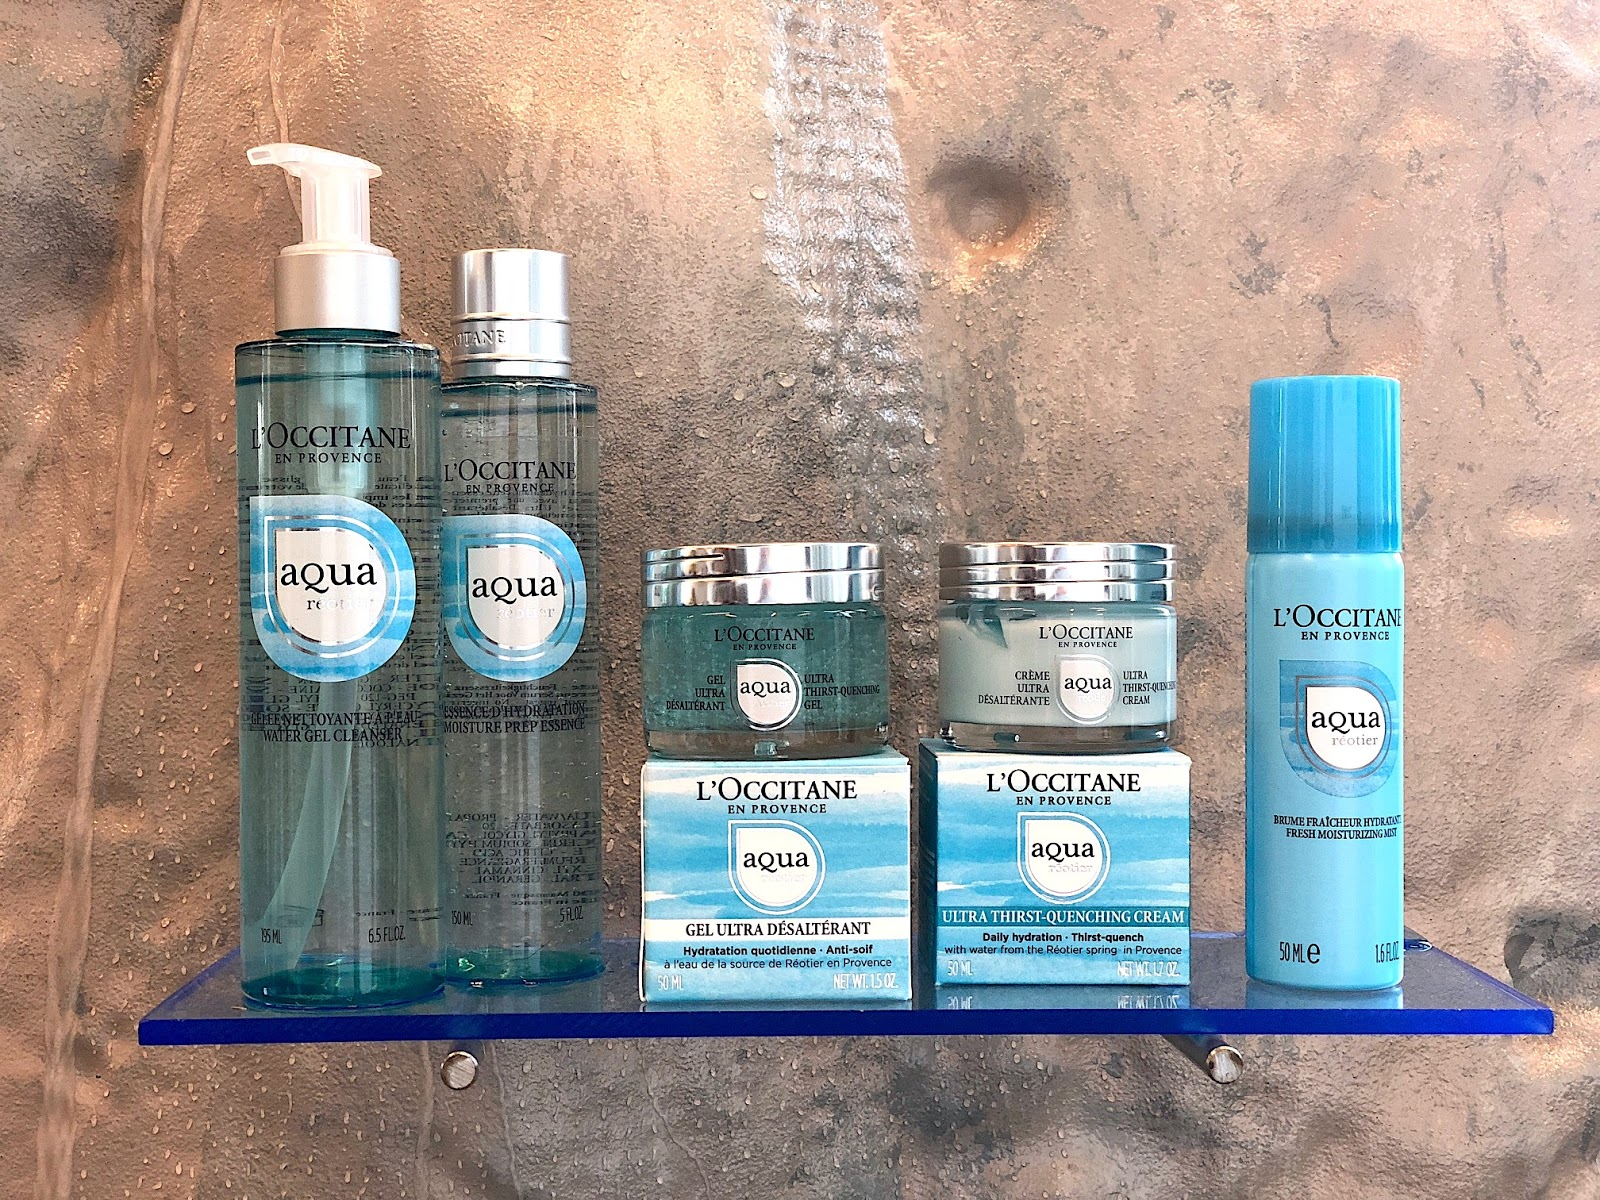 L'Occitane Aqua Reotier Review